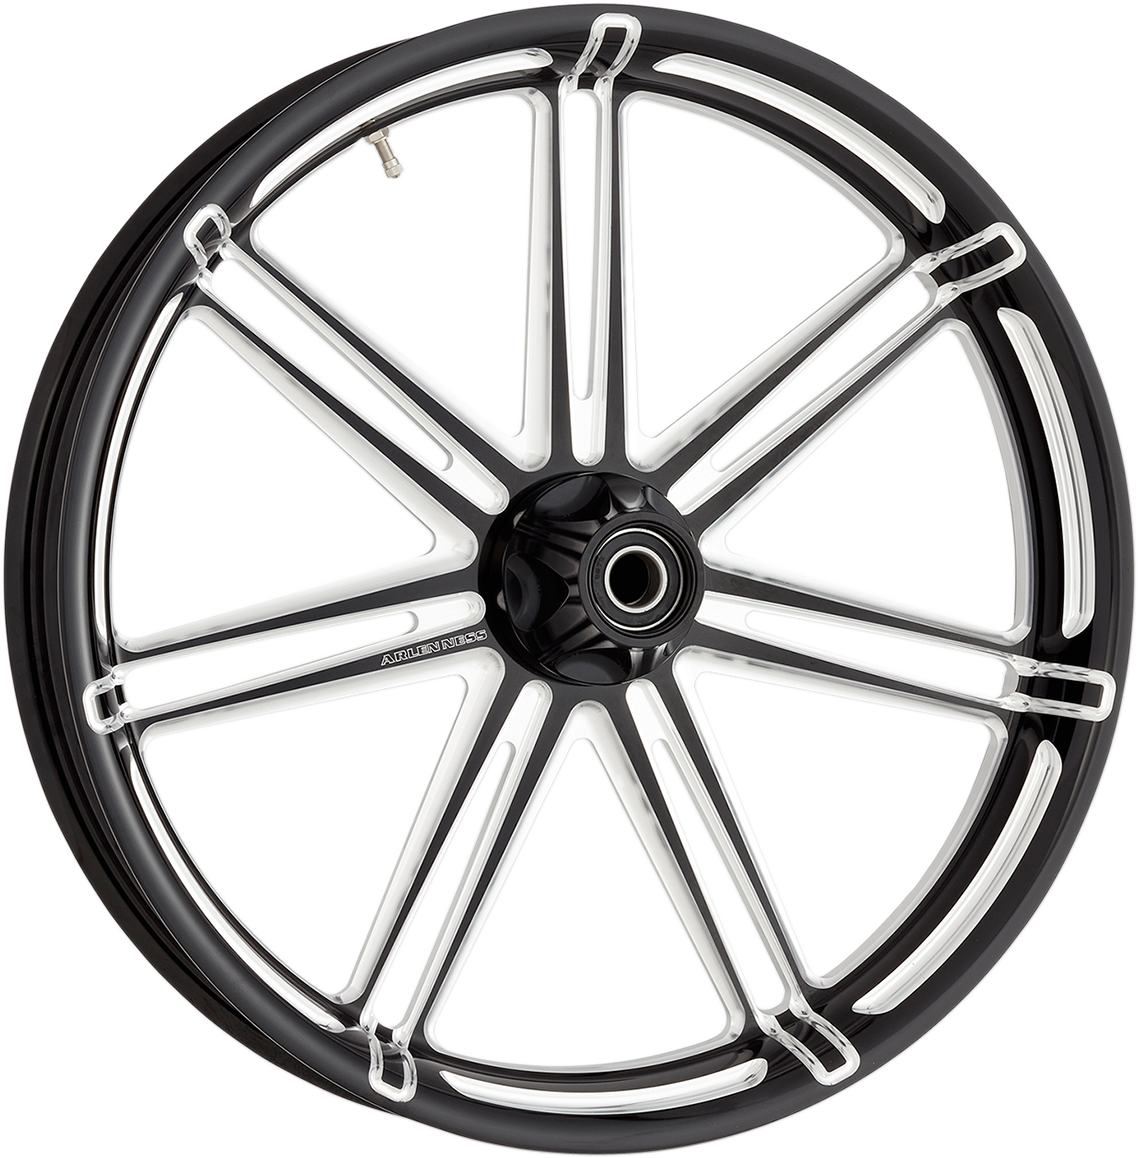 "Arlen Ness Black 7 Valve 26"" x 3.5 ABS Front Wheel for 08-19 Harley Touring"